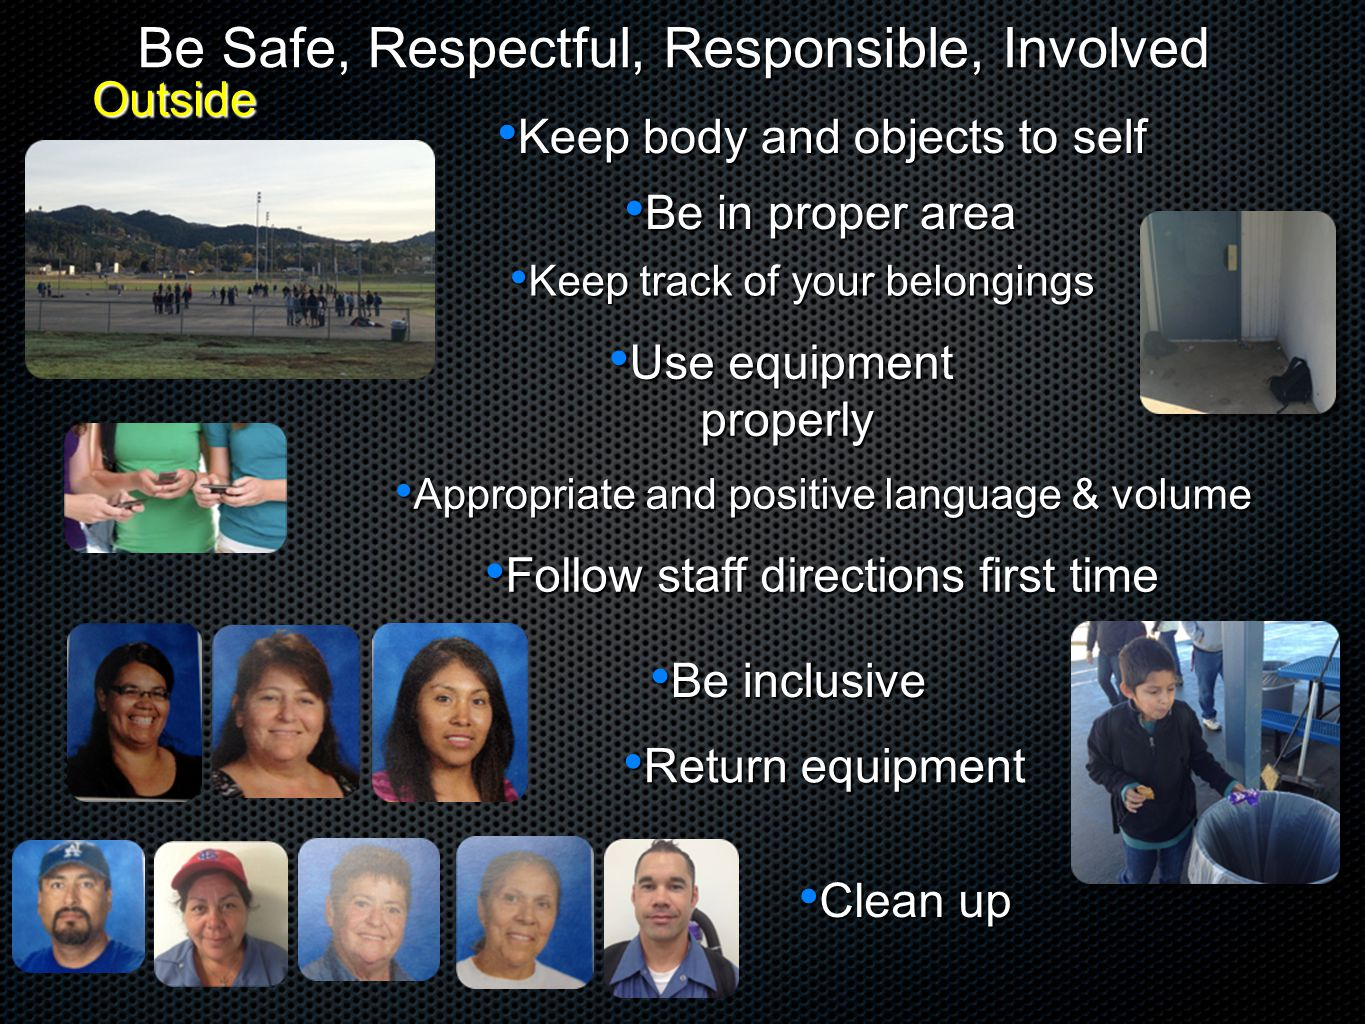 Be Safe, Respectful, Responsible, Involved Keep body and objects to self Keep body and objects to self Be in proper area Be in proper area Use equipme